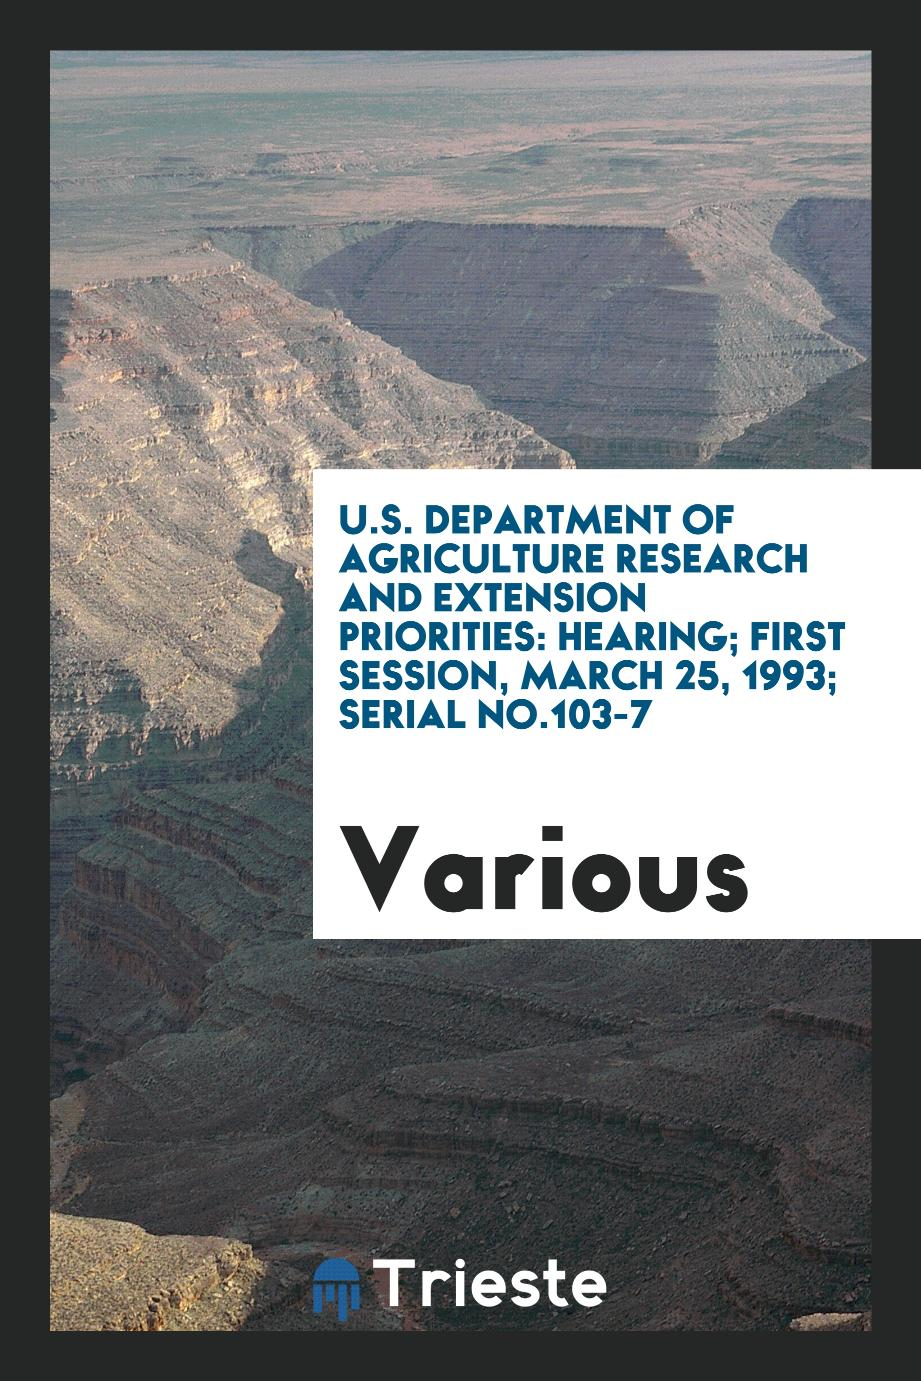 U.S. Department of Agriculture research and extension priorities: hearing; first session, March 25, 1993; Serial No.103-7